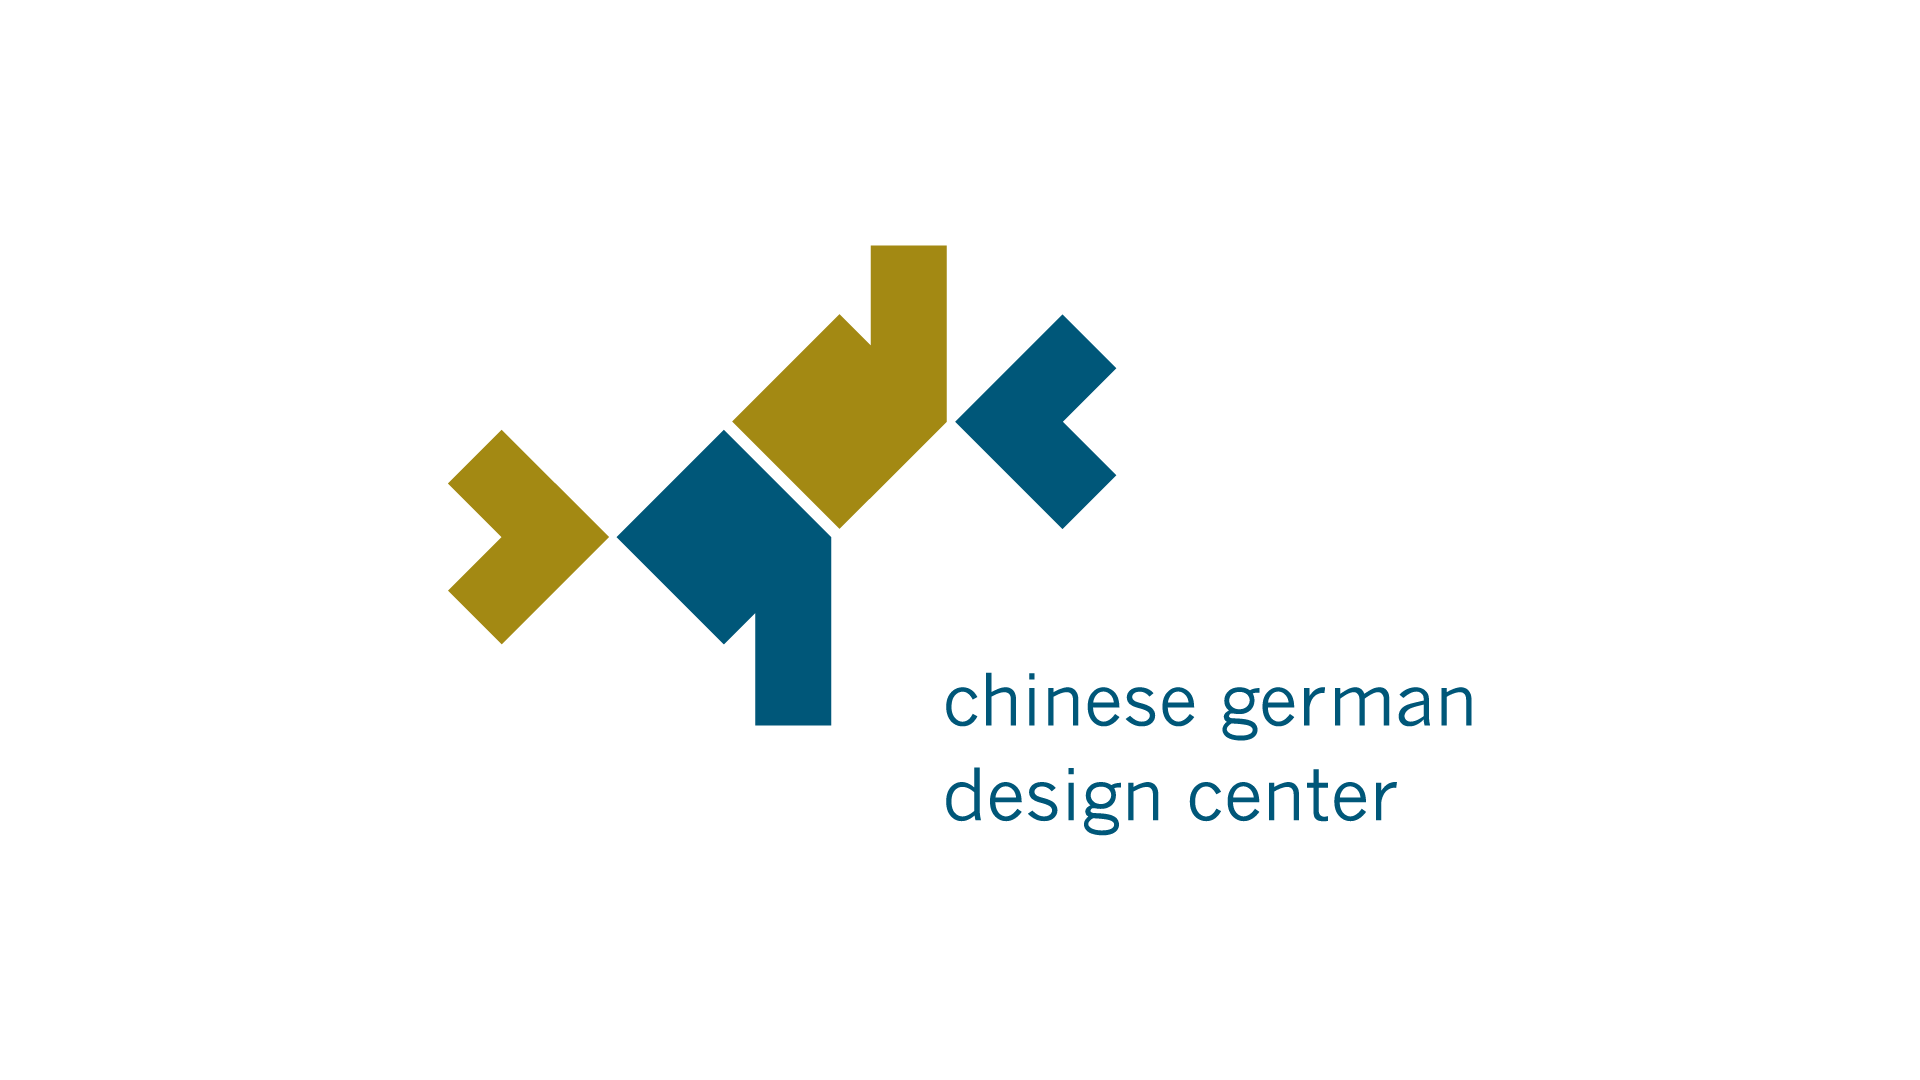 chinese german design center